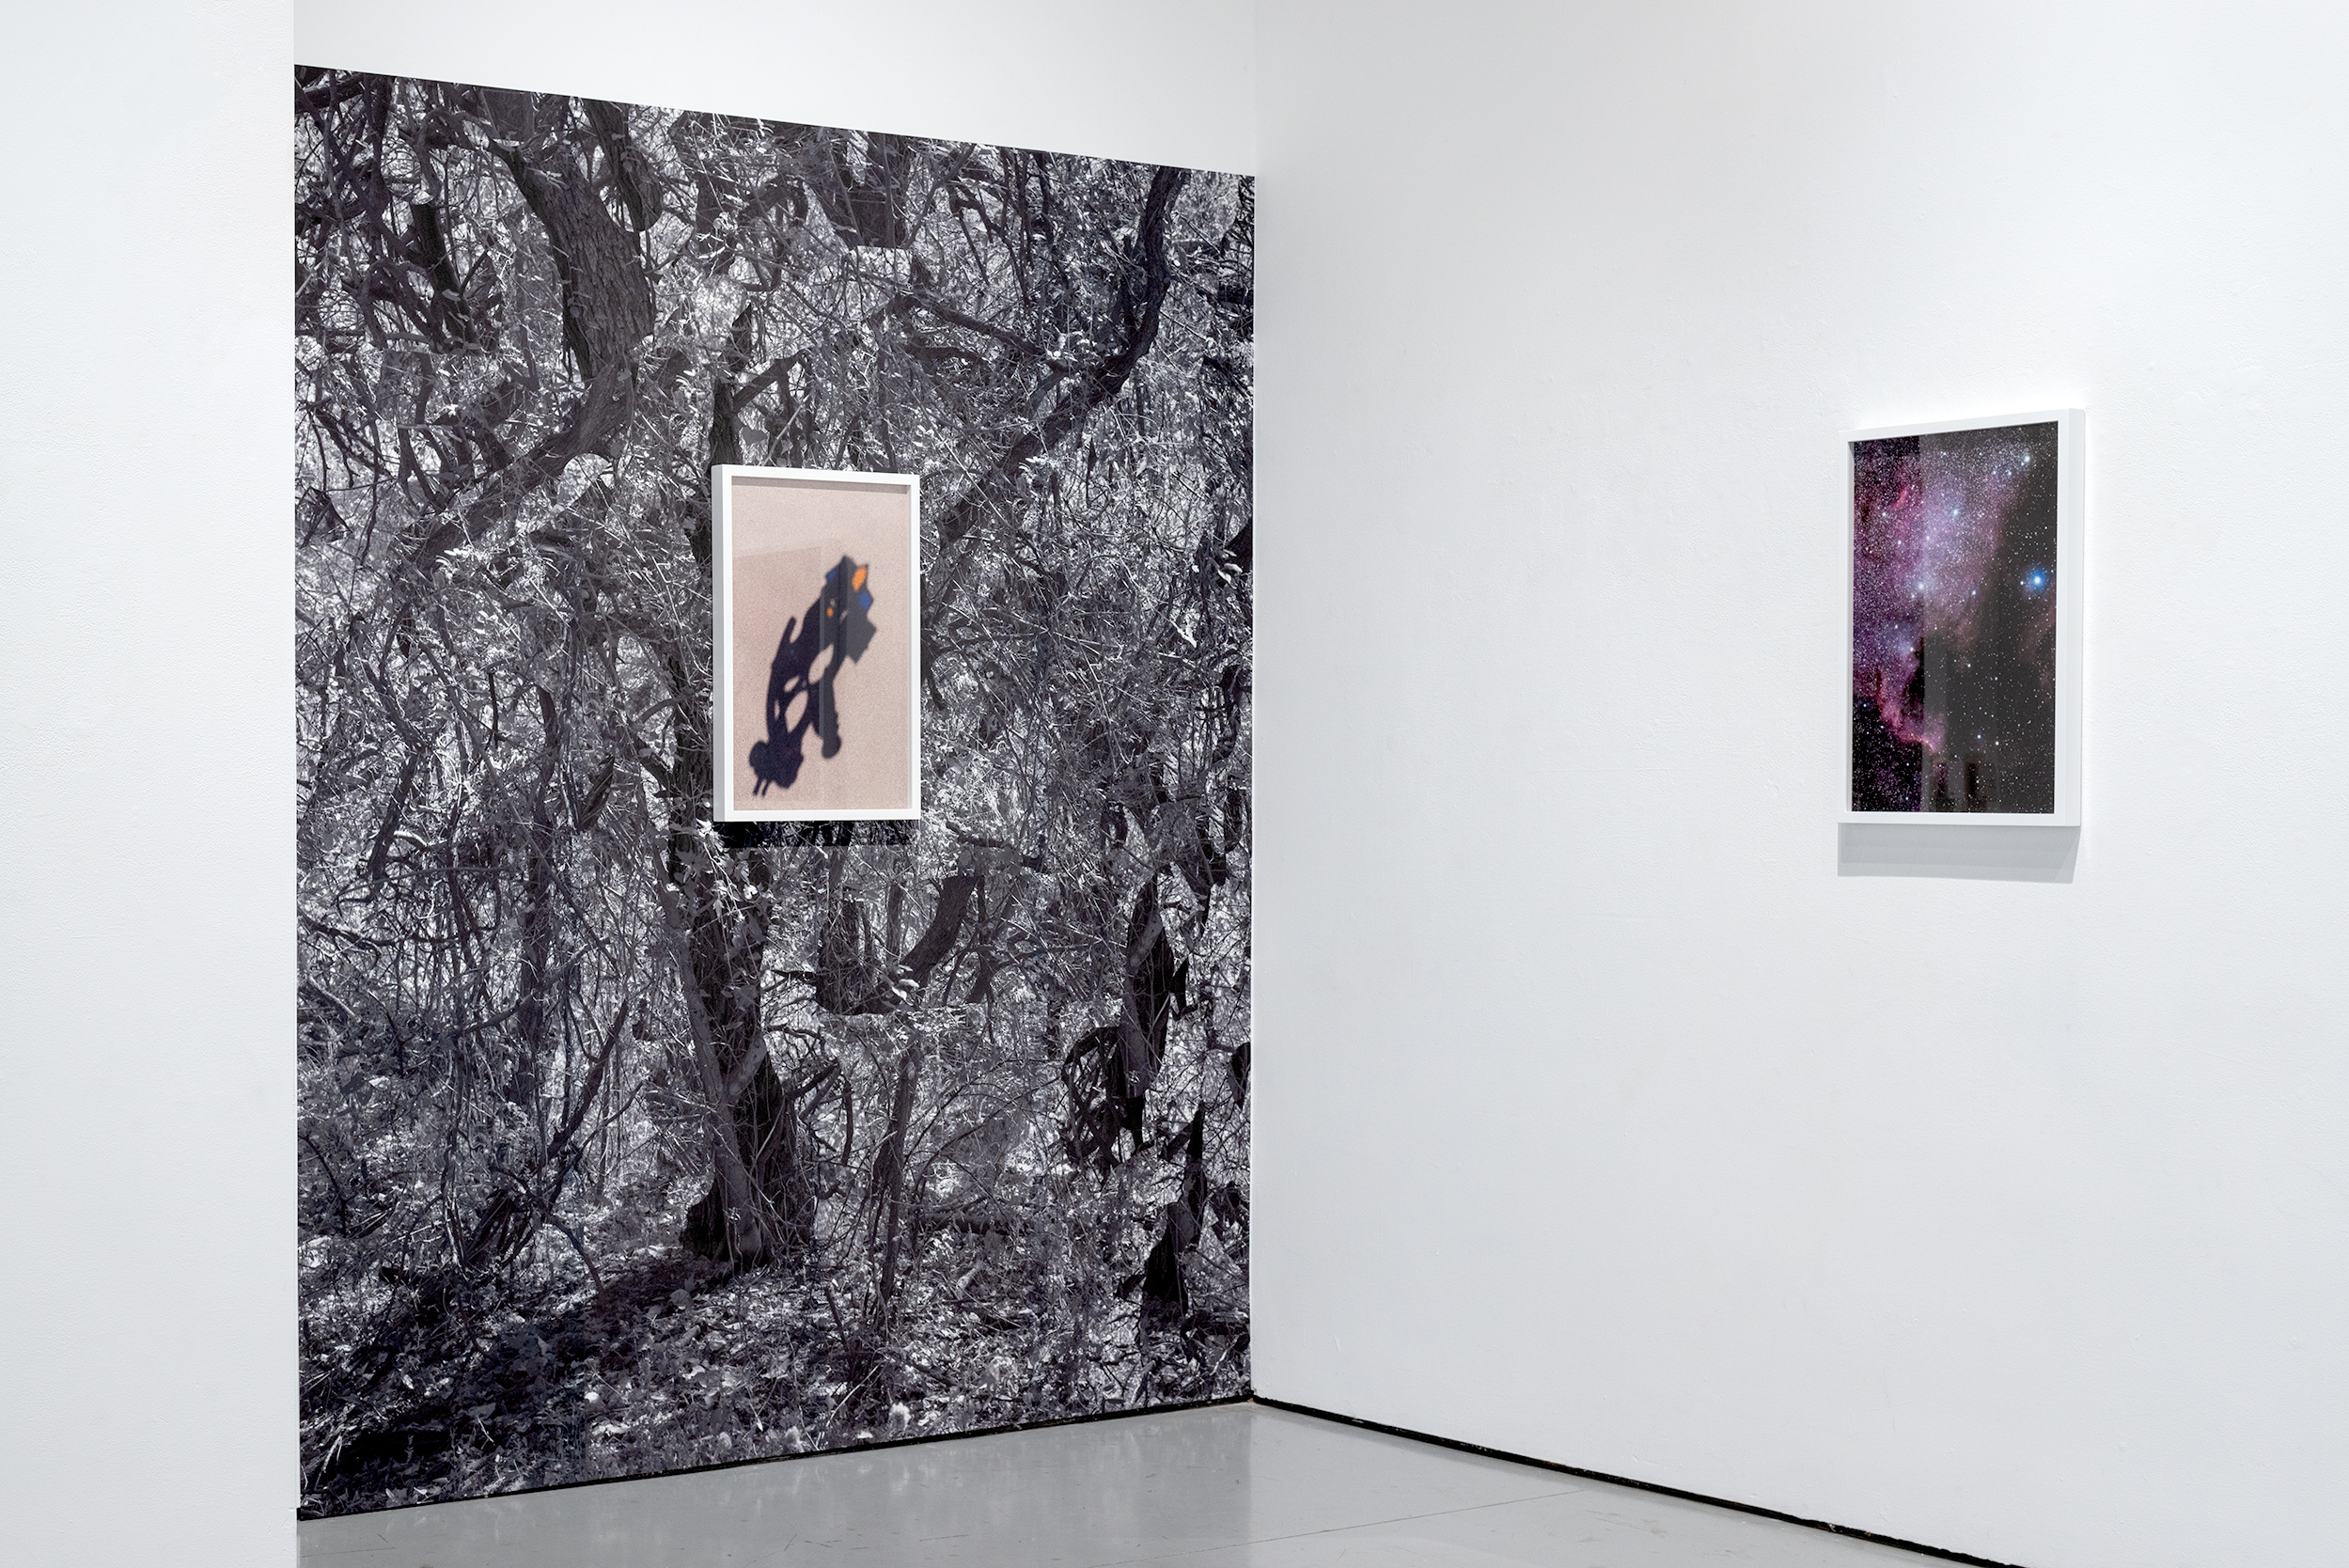 Installation view. Solo exhibition at the West Gallery, California State University Northridge, June 2019.